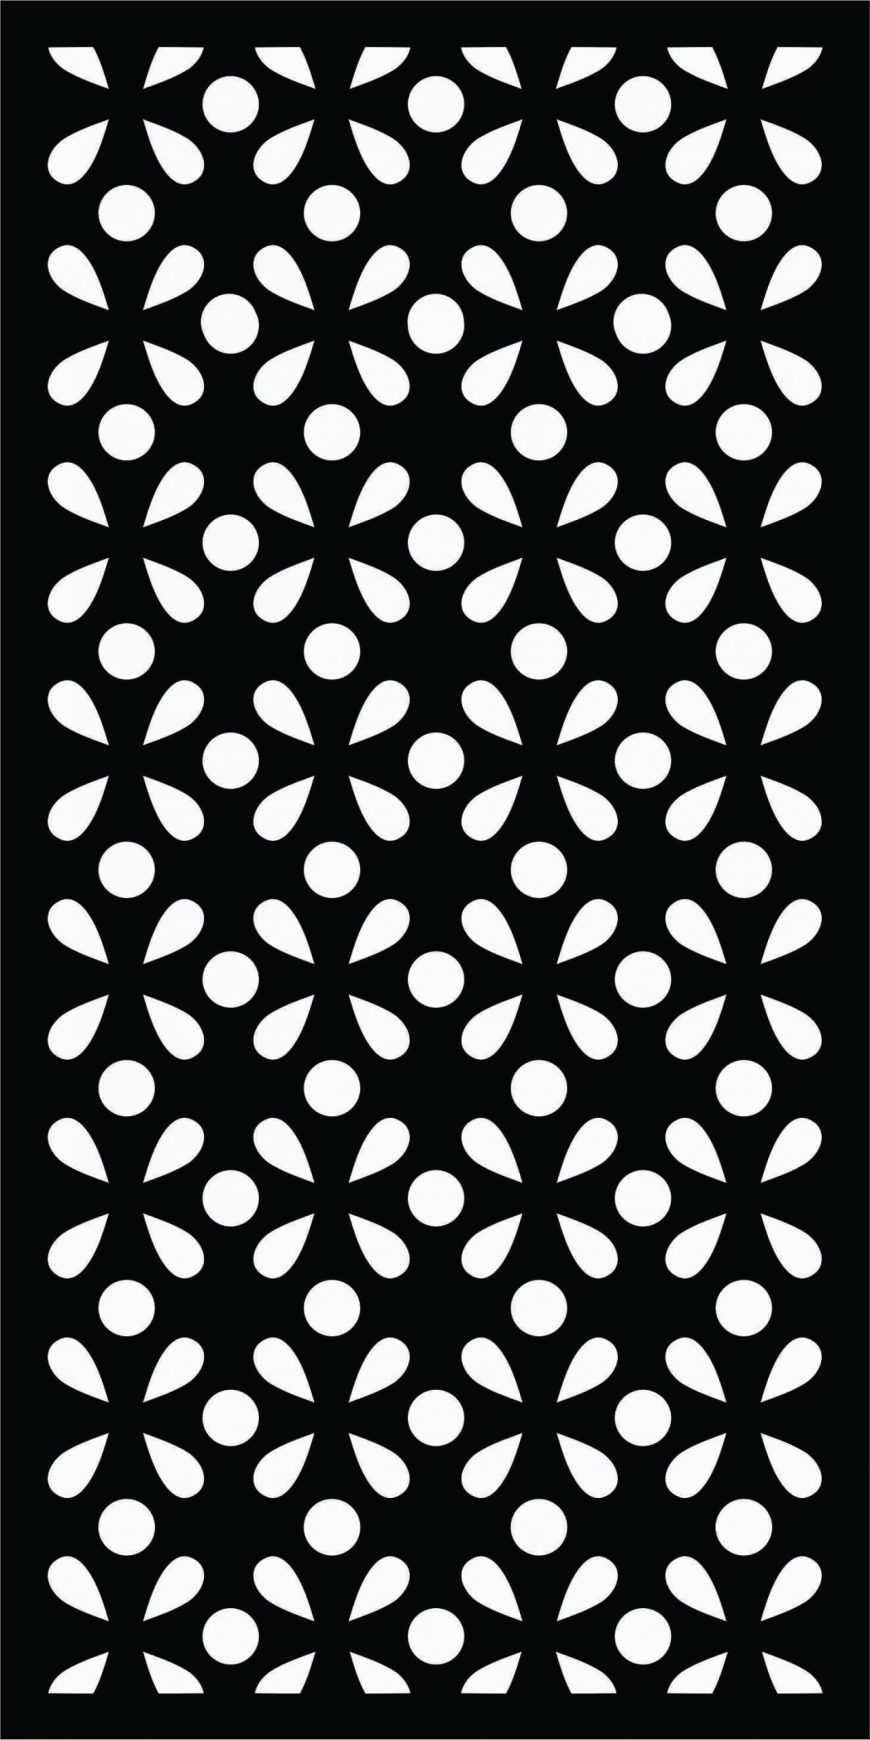 Decorative Screen Patterns For Laser Cutting 199 Free DXF File